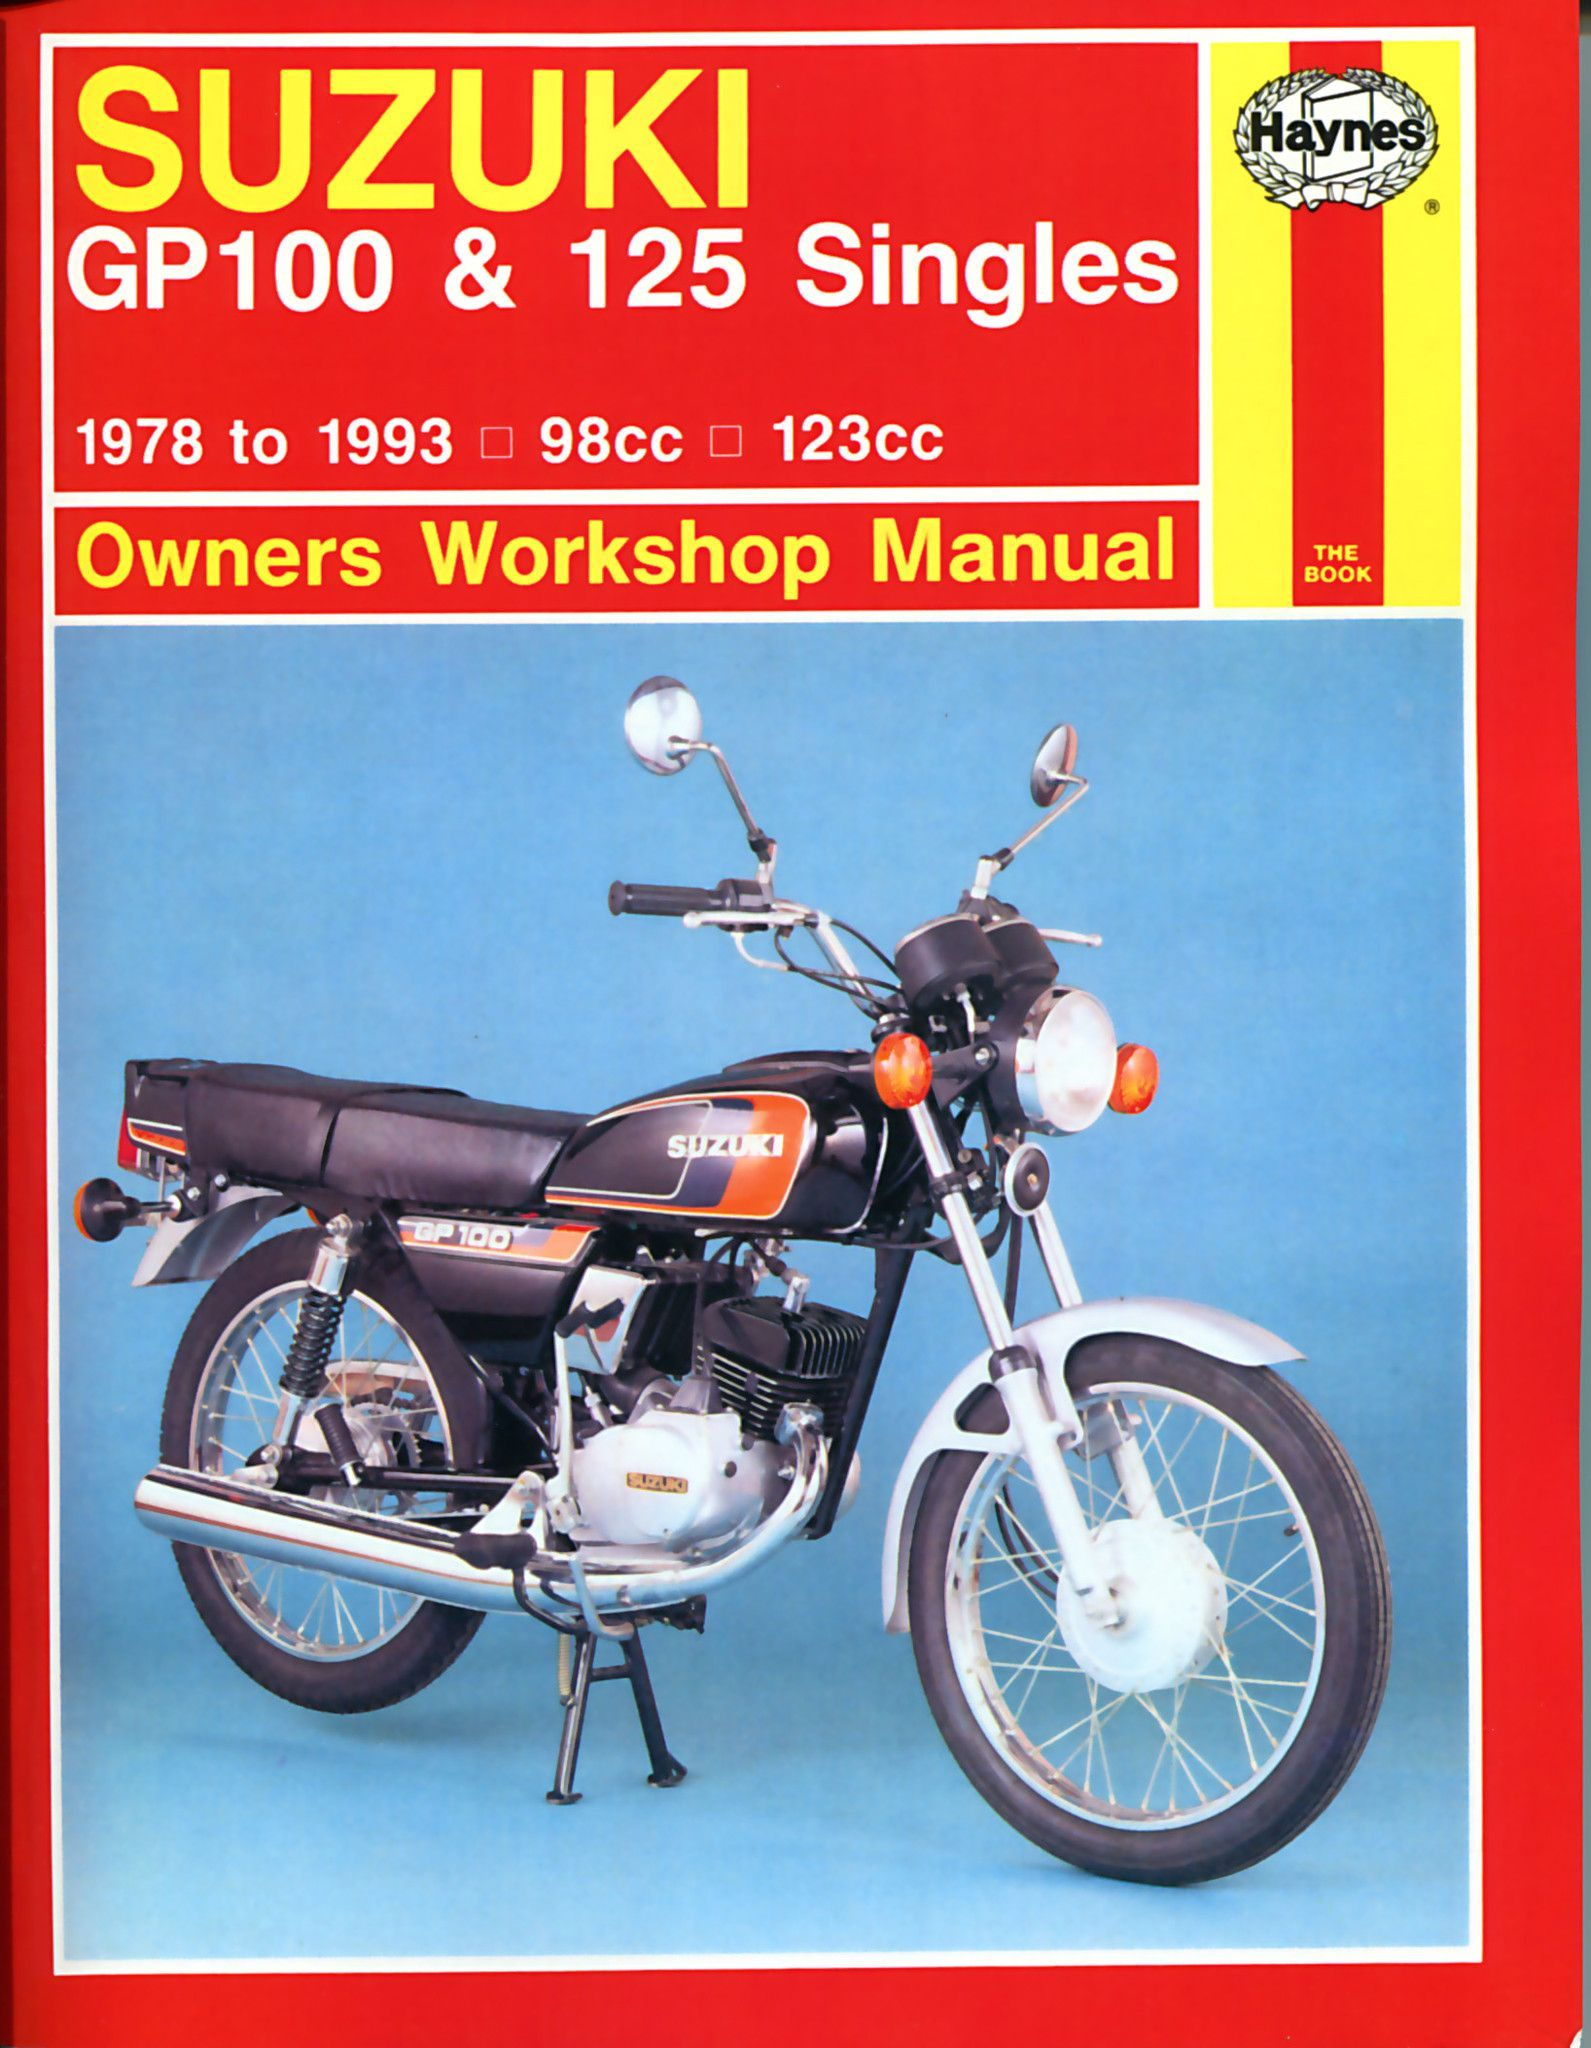 Haynes M576 Repair Manual for 1978-93 Suzuki GP100 and 125 Singles